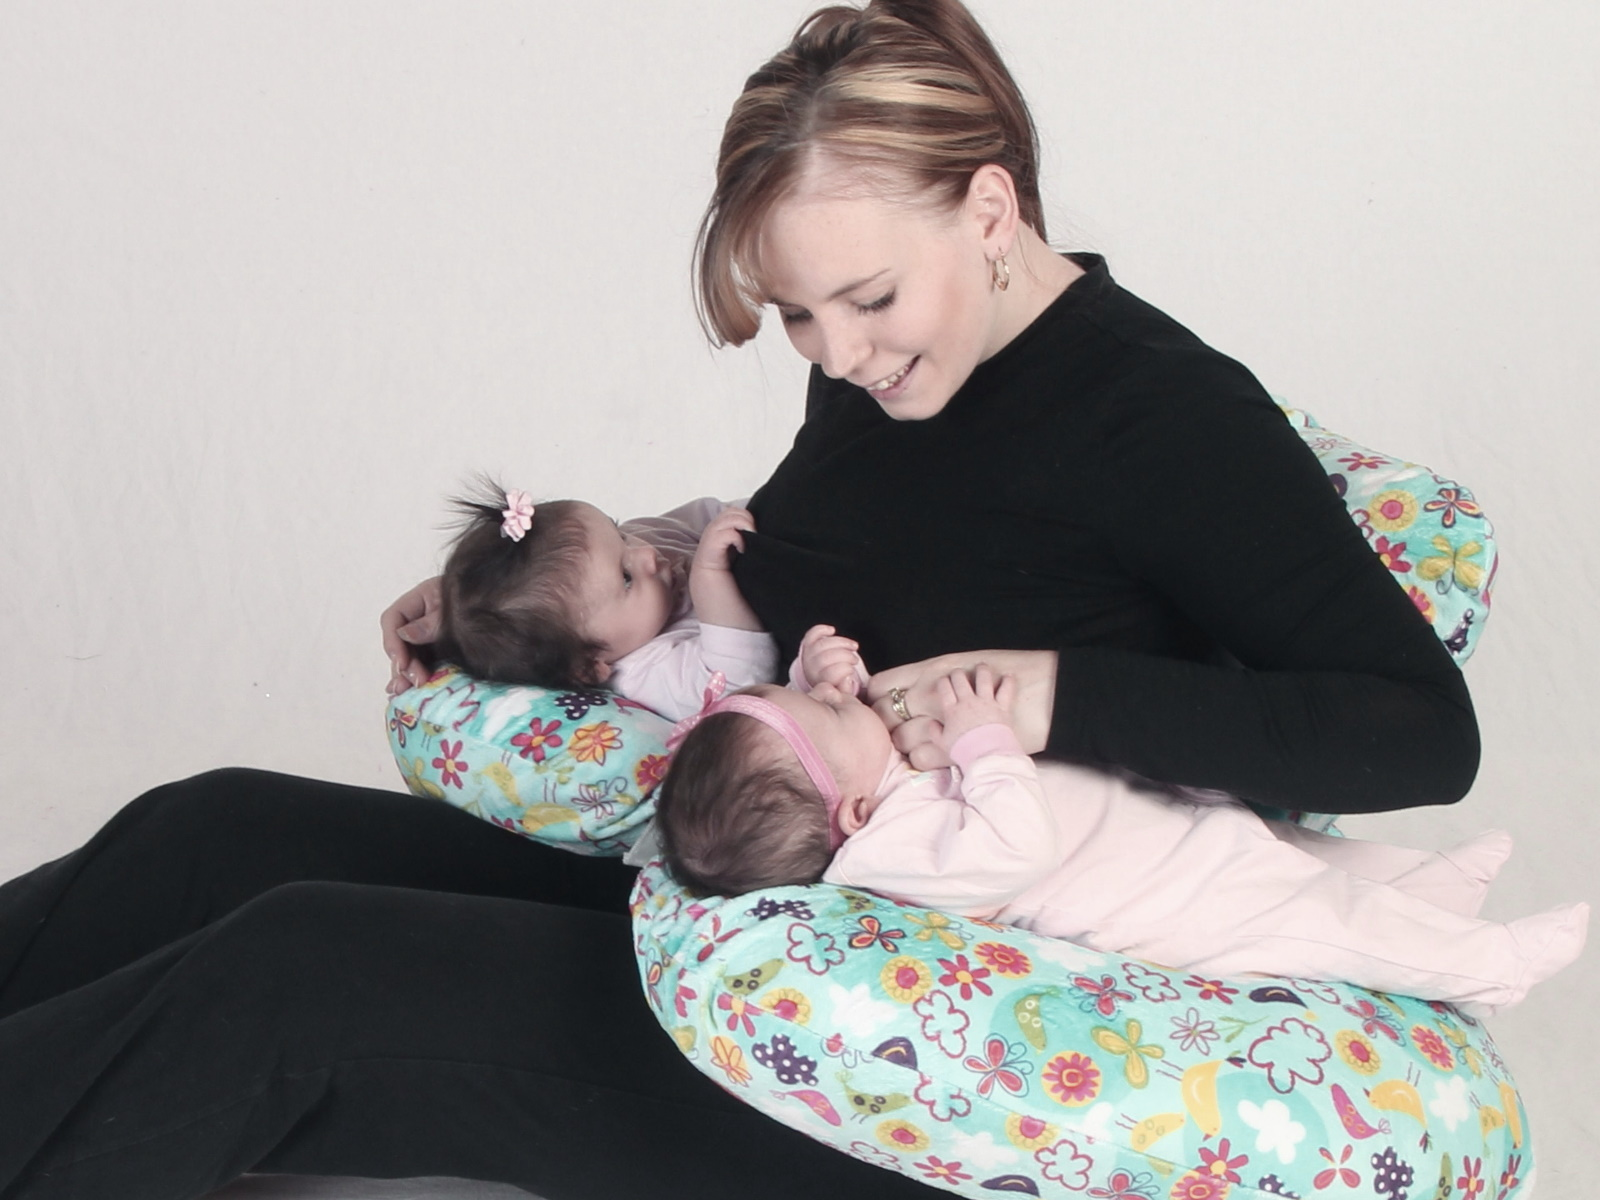 Top tips to breastfeed your baby